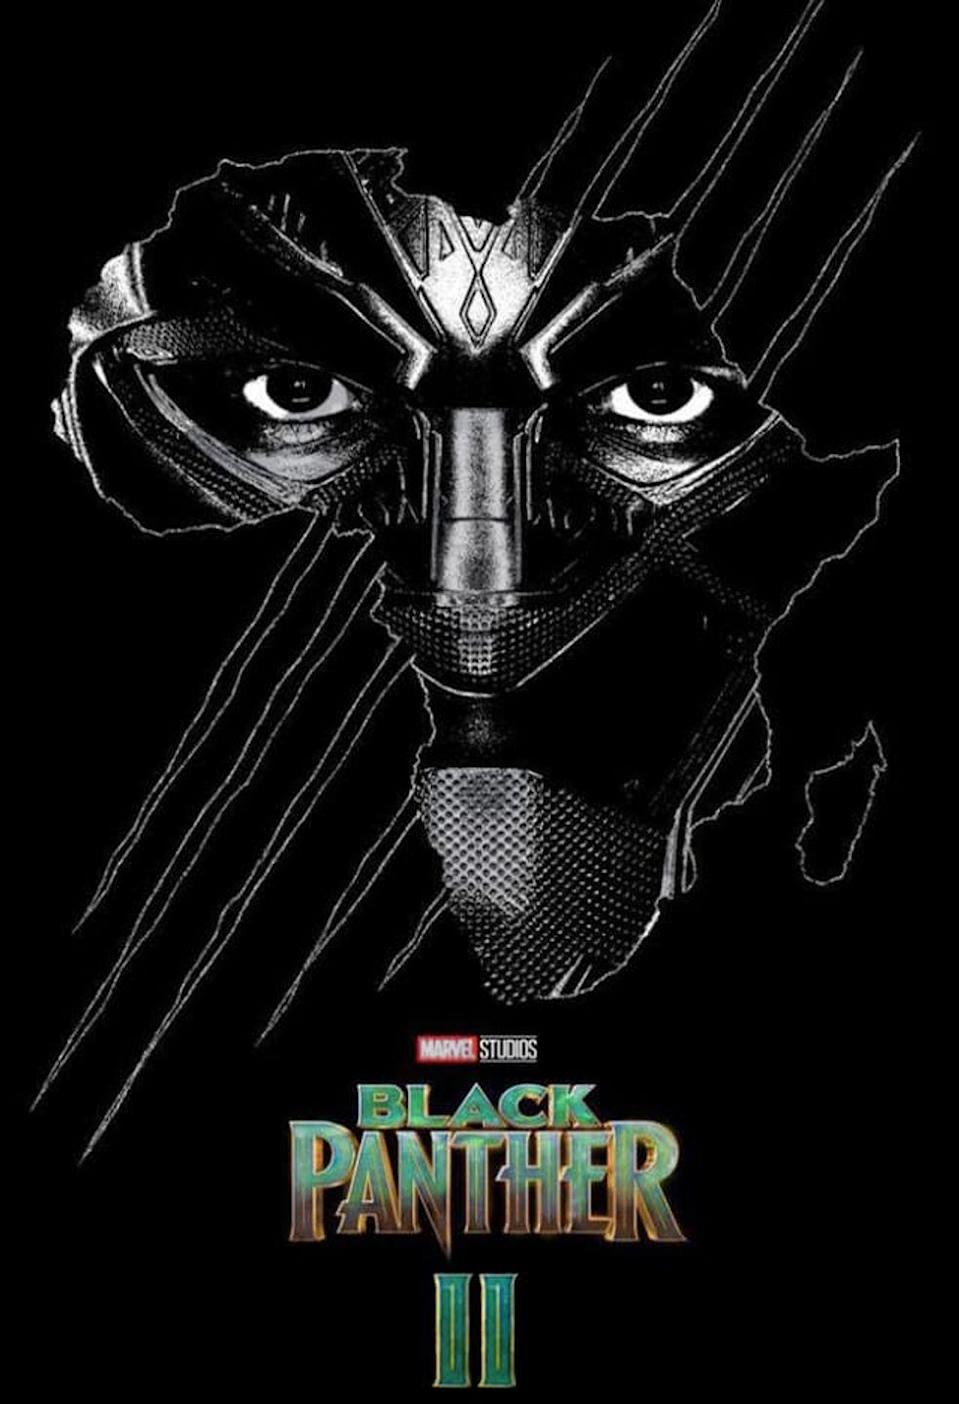 """<p>It's not on <a href=""""https://www.marvel.com/movies"""" rel=""""nofollow noopener"""" target=""""_blank"""" data-ylk=""""slk:Marvel's official schedule"""" class=""""link rapid-noclick-resp"""">Marvel's official schedule</a>, but <em>Variety</em> previously reported that King T'Challa of Wakanda would return on <a href=""""https://variety.com/2019/film/news/black-panther-2-release-date-1203313186/"""" rel=""""nofollow noopener"""" target=""""_blank"""" data-ylk=""""slk:May 6, 2022"""" class=""""link rapid-noclick-resp"""">May 6, 2022</a> — however, the <a href=""""https://screenrant.com/black-panther-2-chadwick-boseman-marvel-options-recast/"""" rel=""""nofollow noopener"""" target=""""_blank"""" data-ylk=""""slk:future of the film is now unclear"""" class=""""link rapid-noclick-resp"""">future of the film is now unclear</a> given star <a href=""""https://www.goodhousekeeping.com/life/a33838426/chadwick-boseman-dead-black-panther/"""" rel=""""nofollow noopener"""" target=""""_blank"""" data-ylk=""""slk:Chadwick Boseman's untimely death"""" class=""""link rapid-noclick-resp"""">Chadwick Boseman's untimely death</a> at age 43 from colon cancer in August 2020. </p>"""